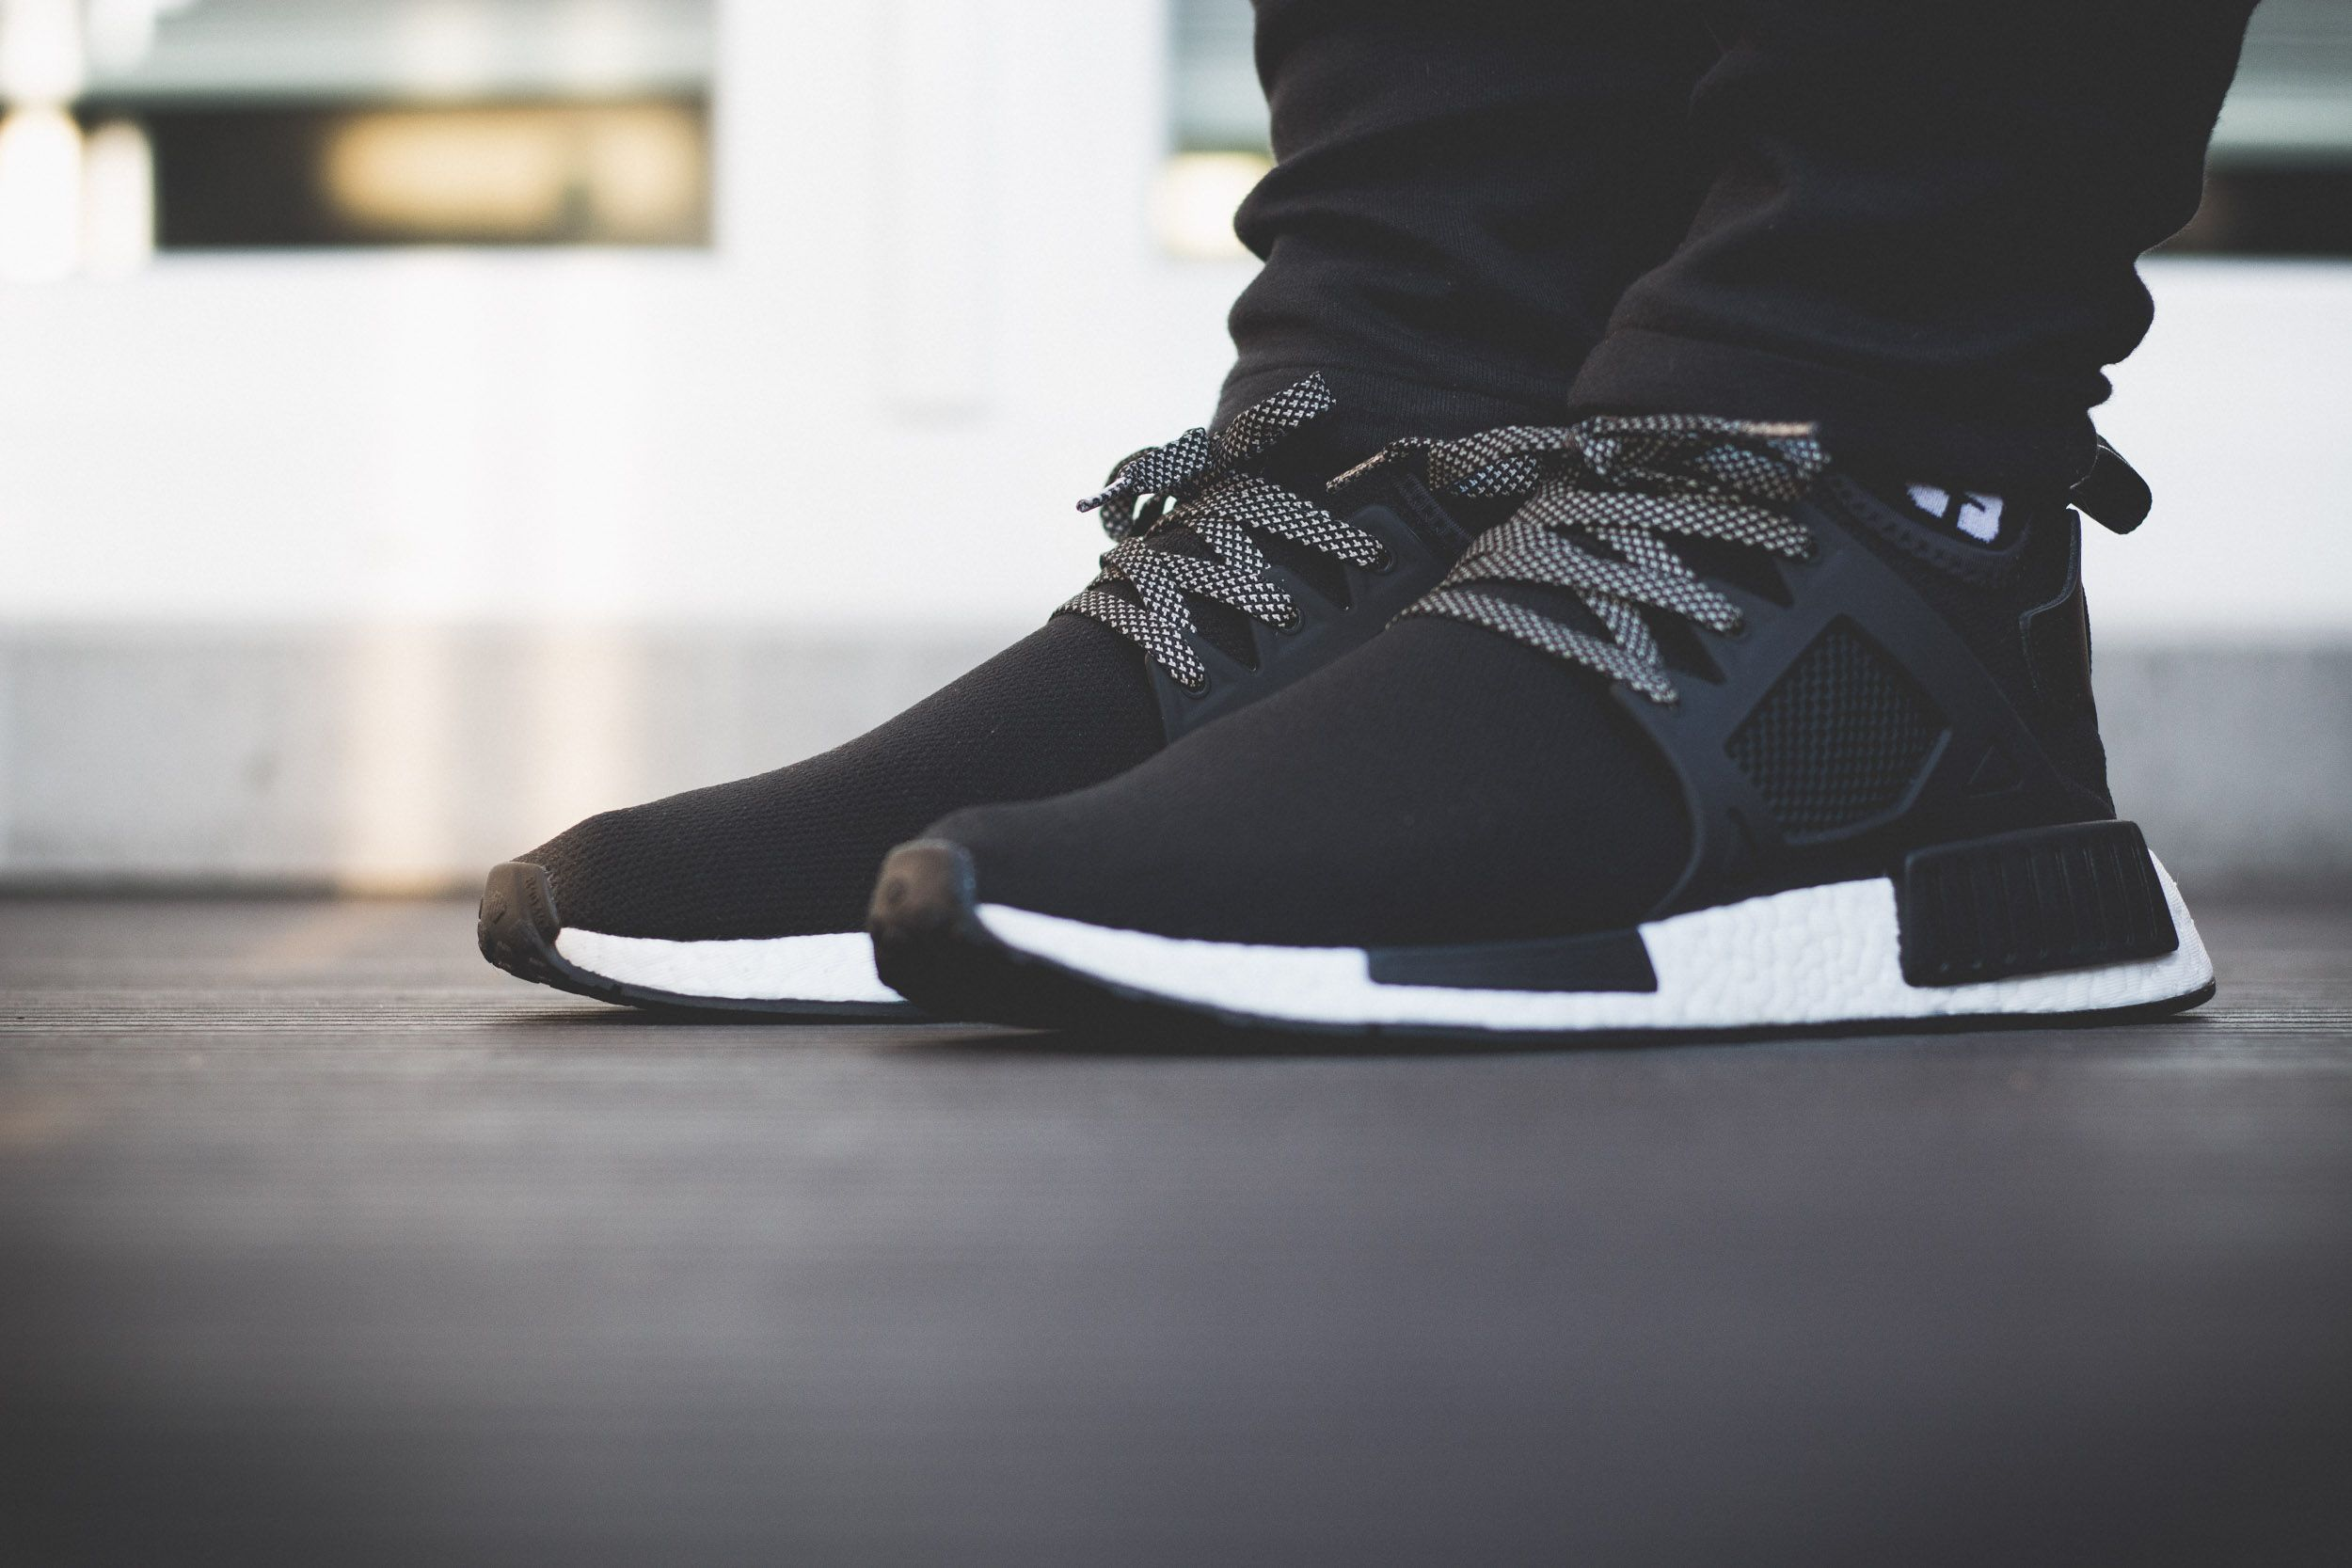 adidas NMD XR1 – Black White On Feet, #adidas